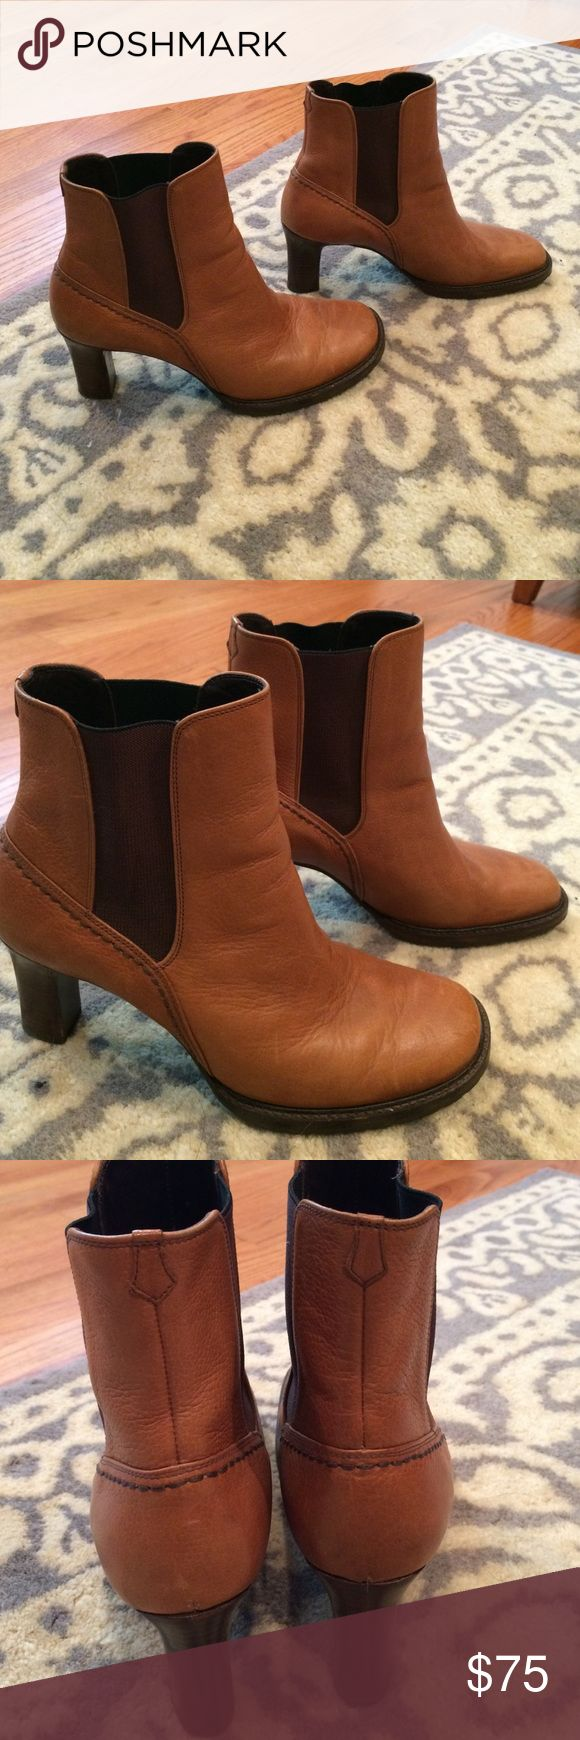 Cole Haan Tan Chelsea boot - Fall Essential! In excellent condition!  Perfect for a skirt or jeans!  Great addition to any fall wardrobe!  Tan leather with a wood stacked heel.  Size 8.5 Cole Haan Shoes Ankle Boots & Booties